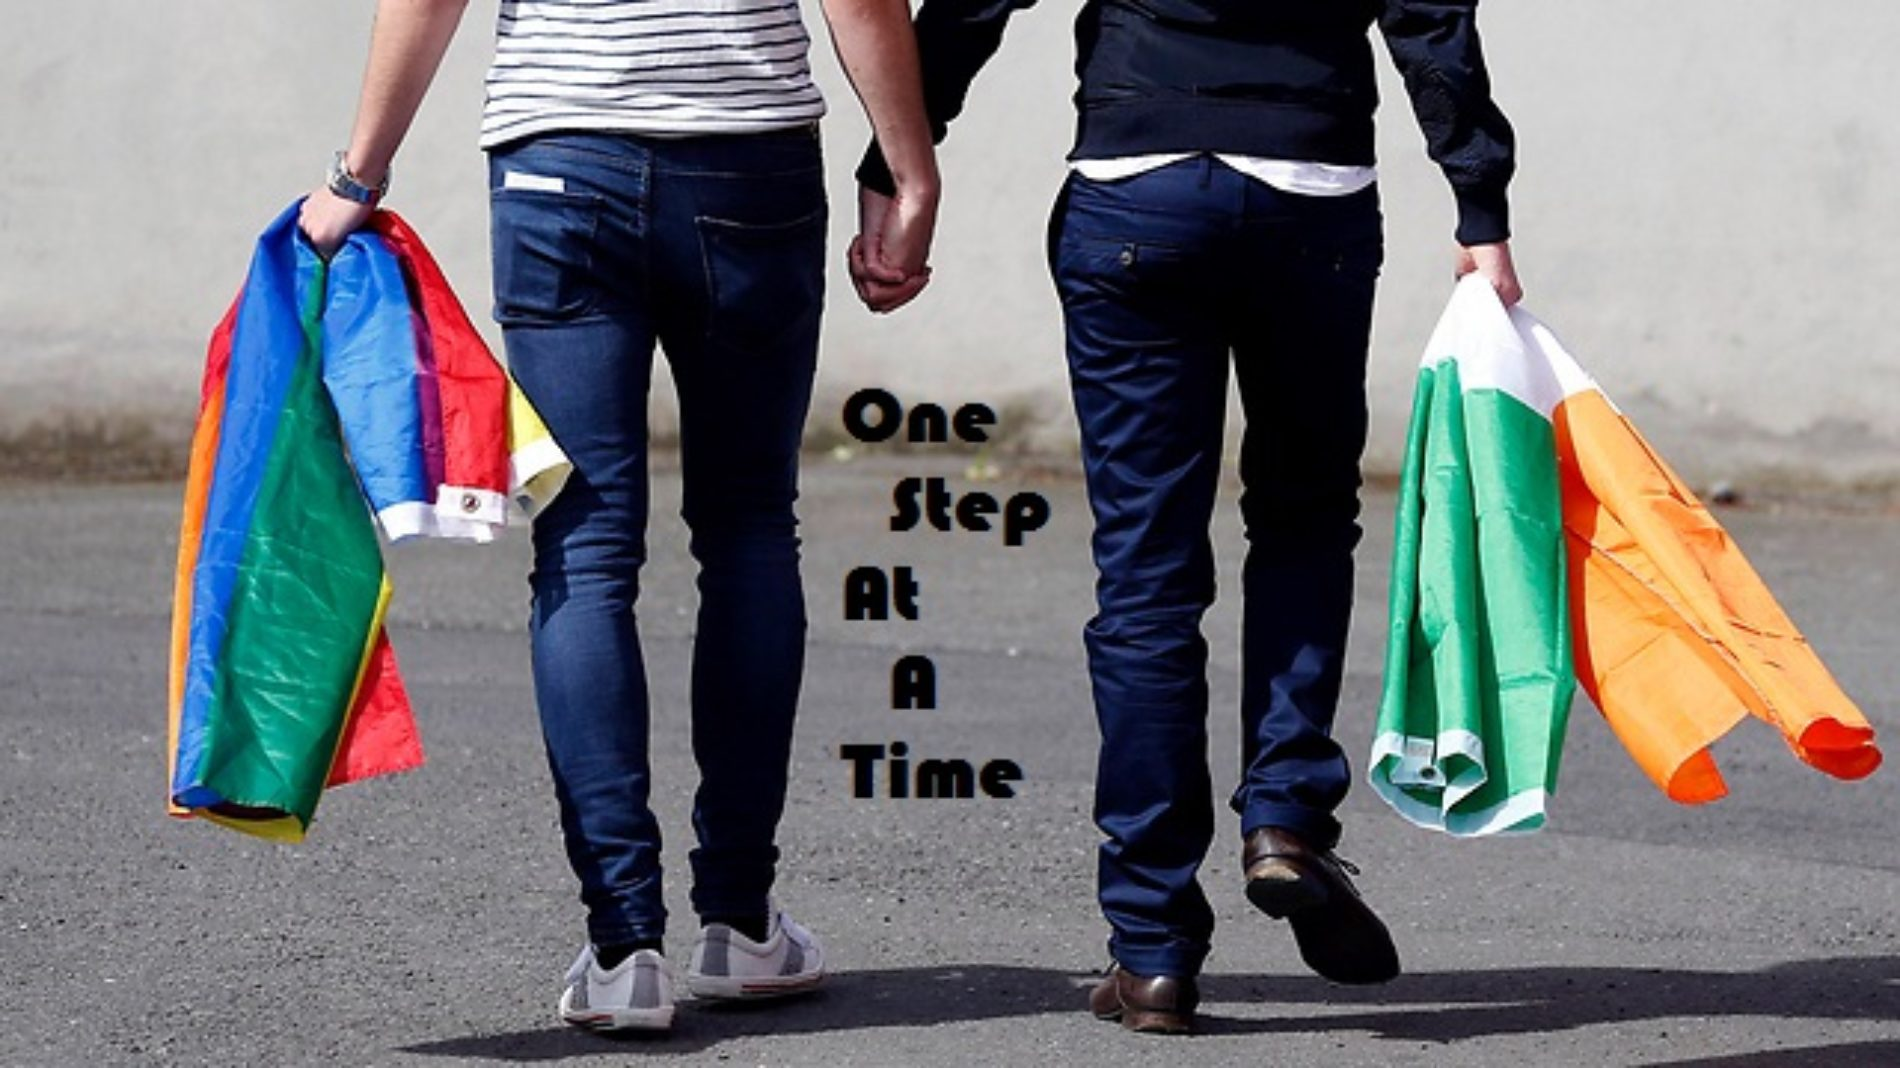 ONE STEP AT A TIME (Episode 1)